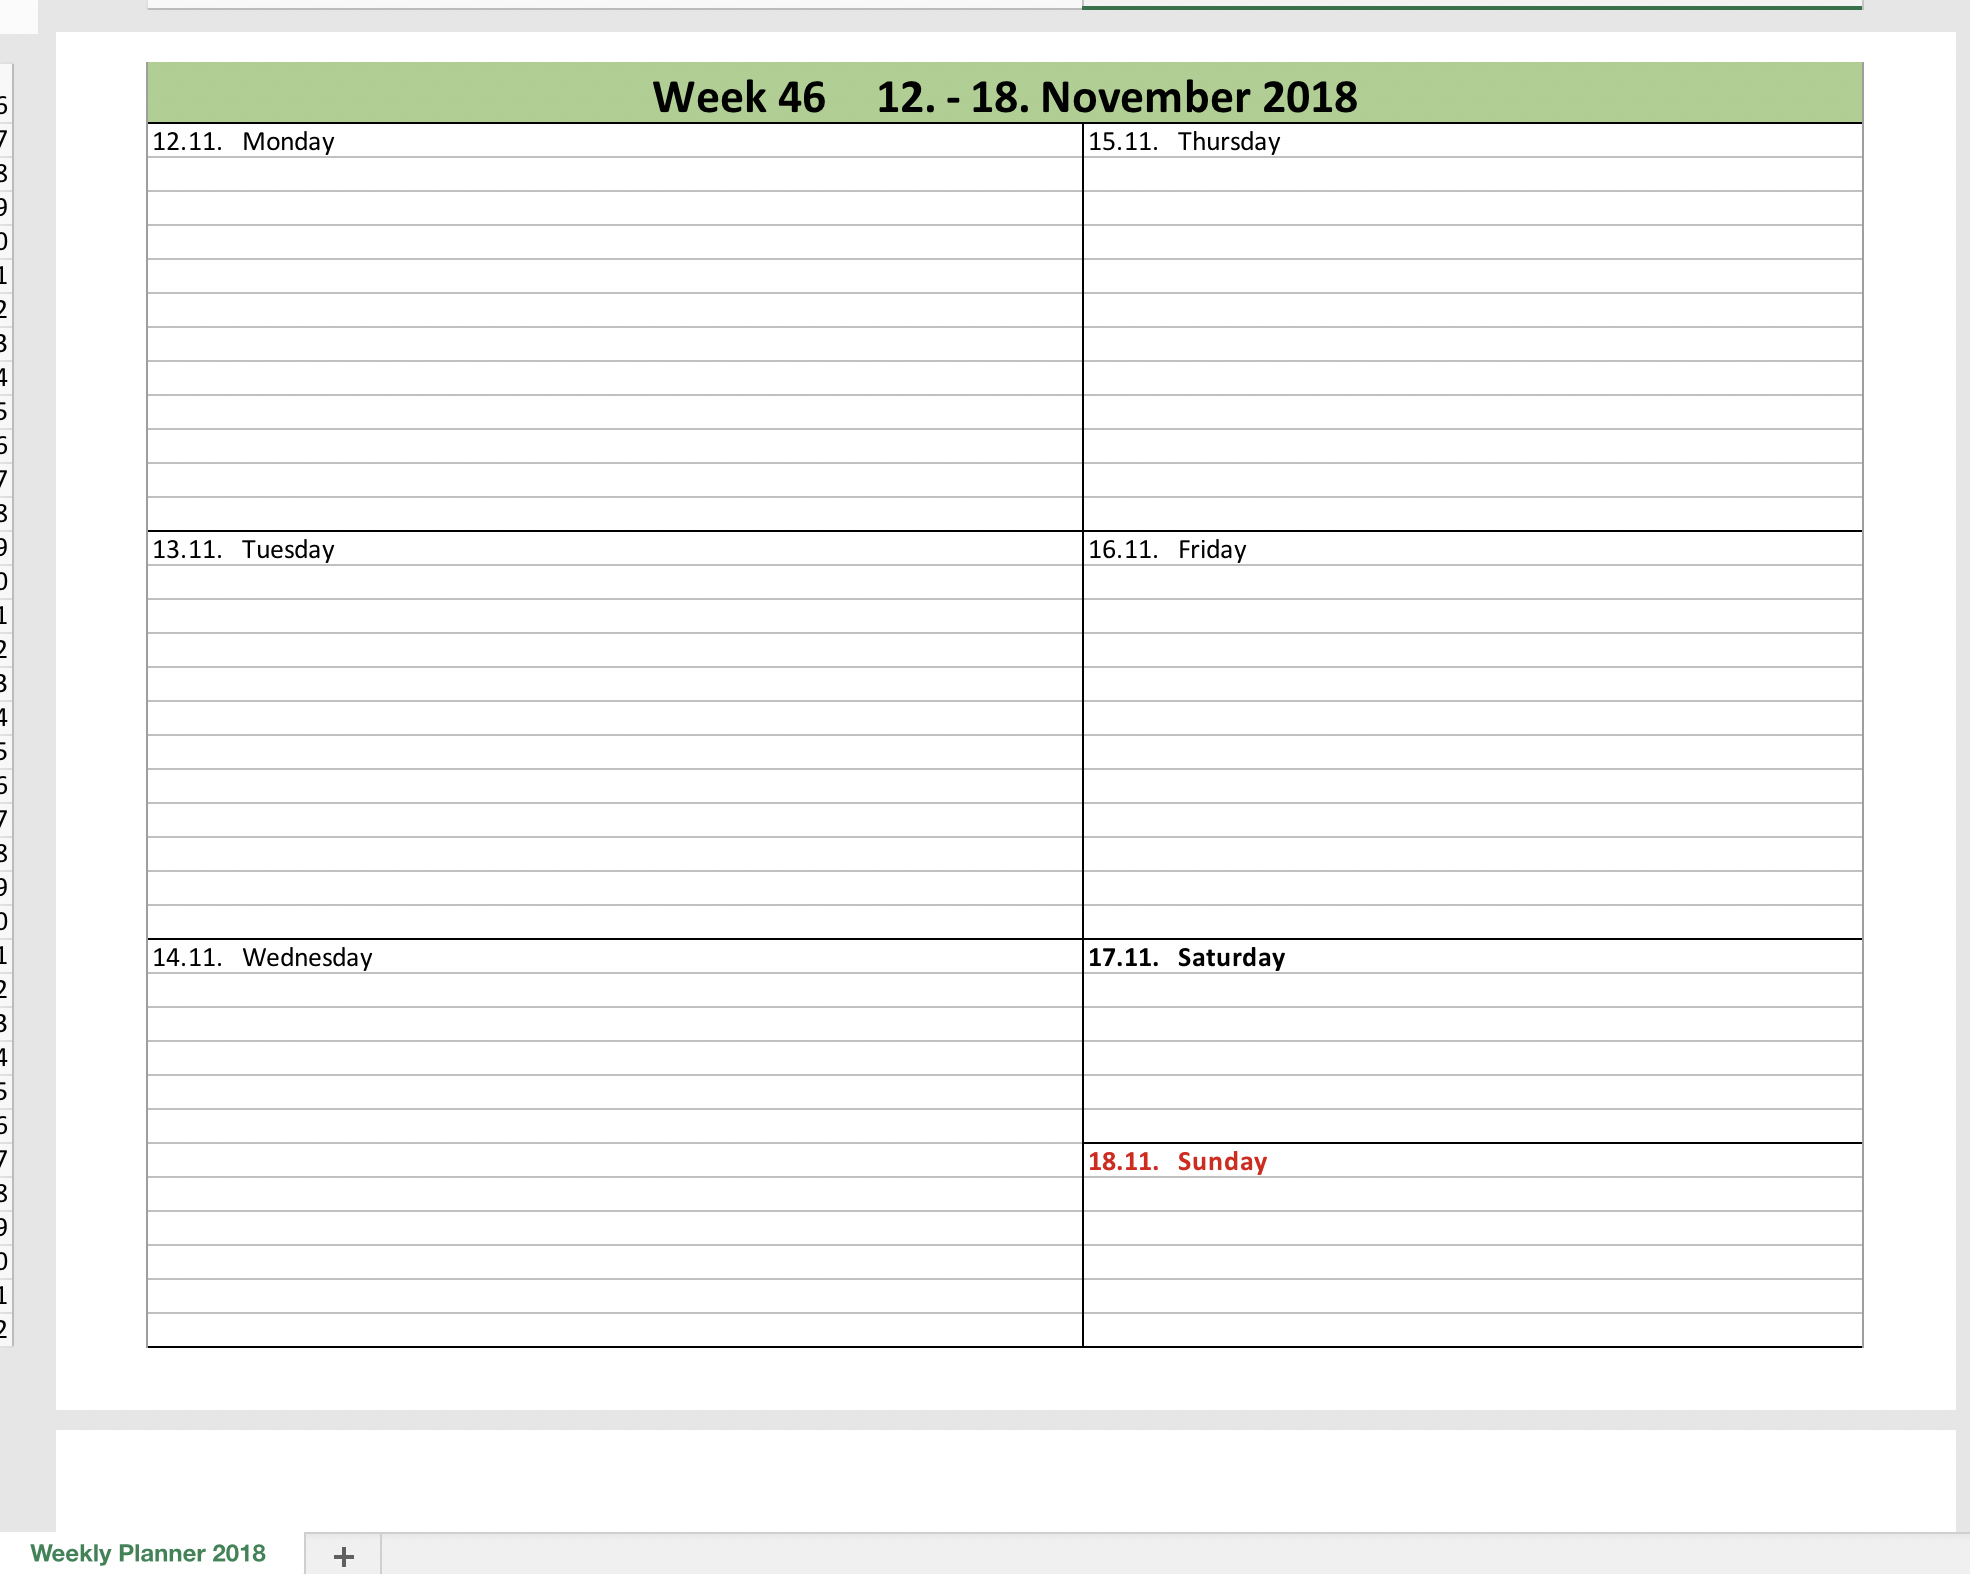 Weekly Planner 2018 with excel-template